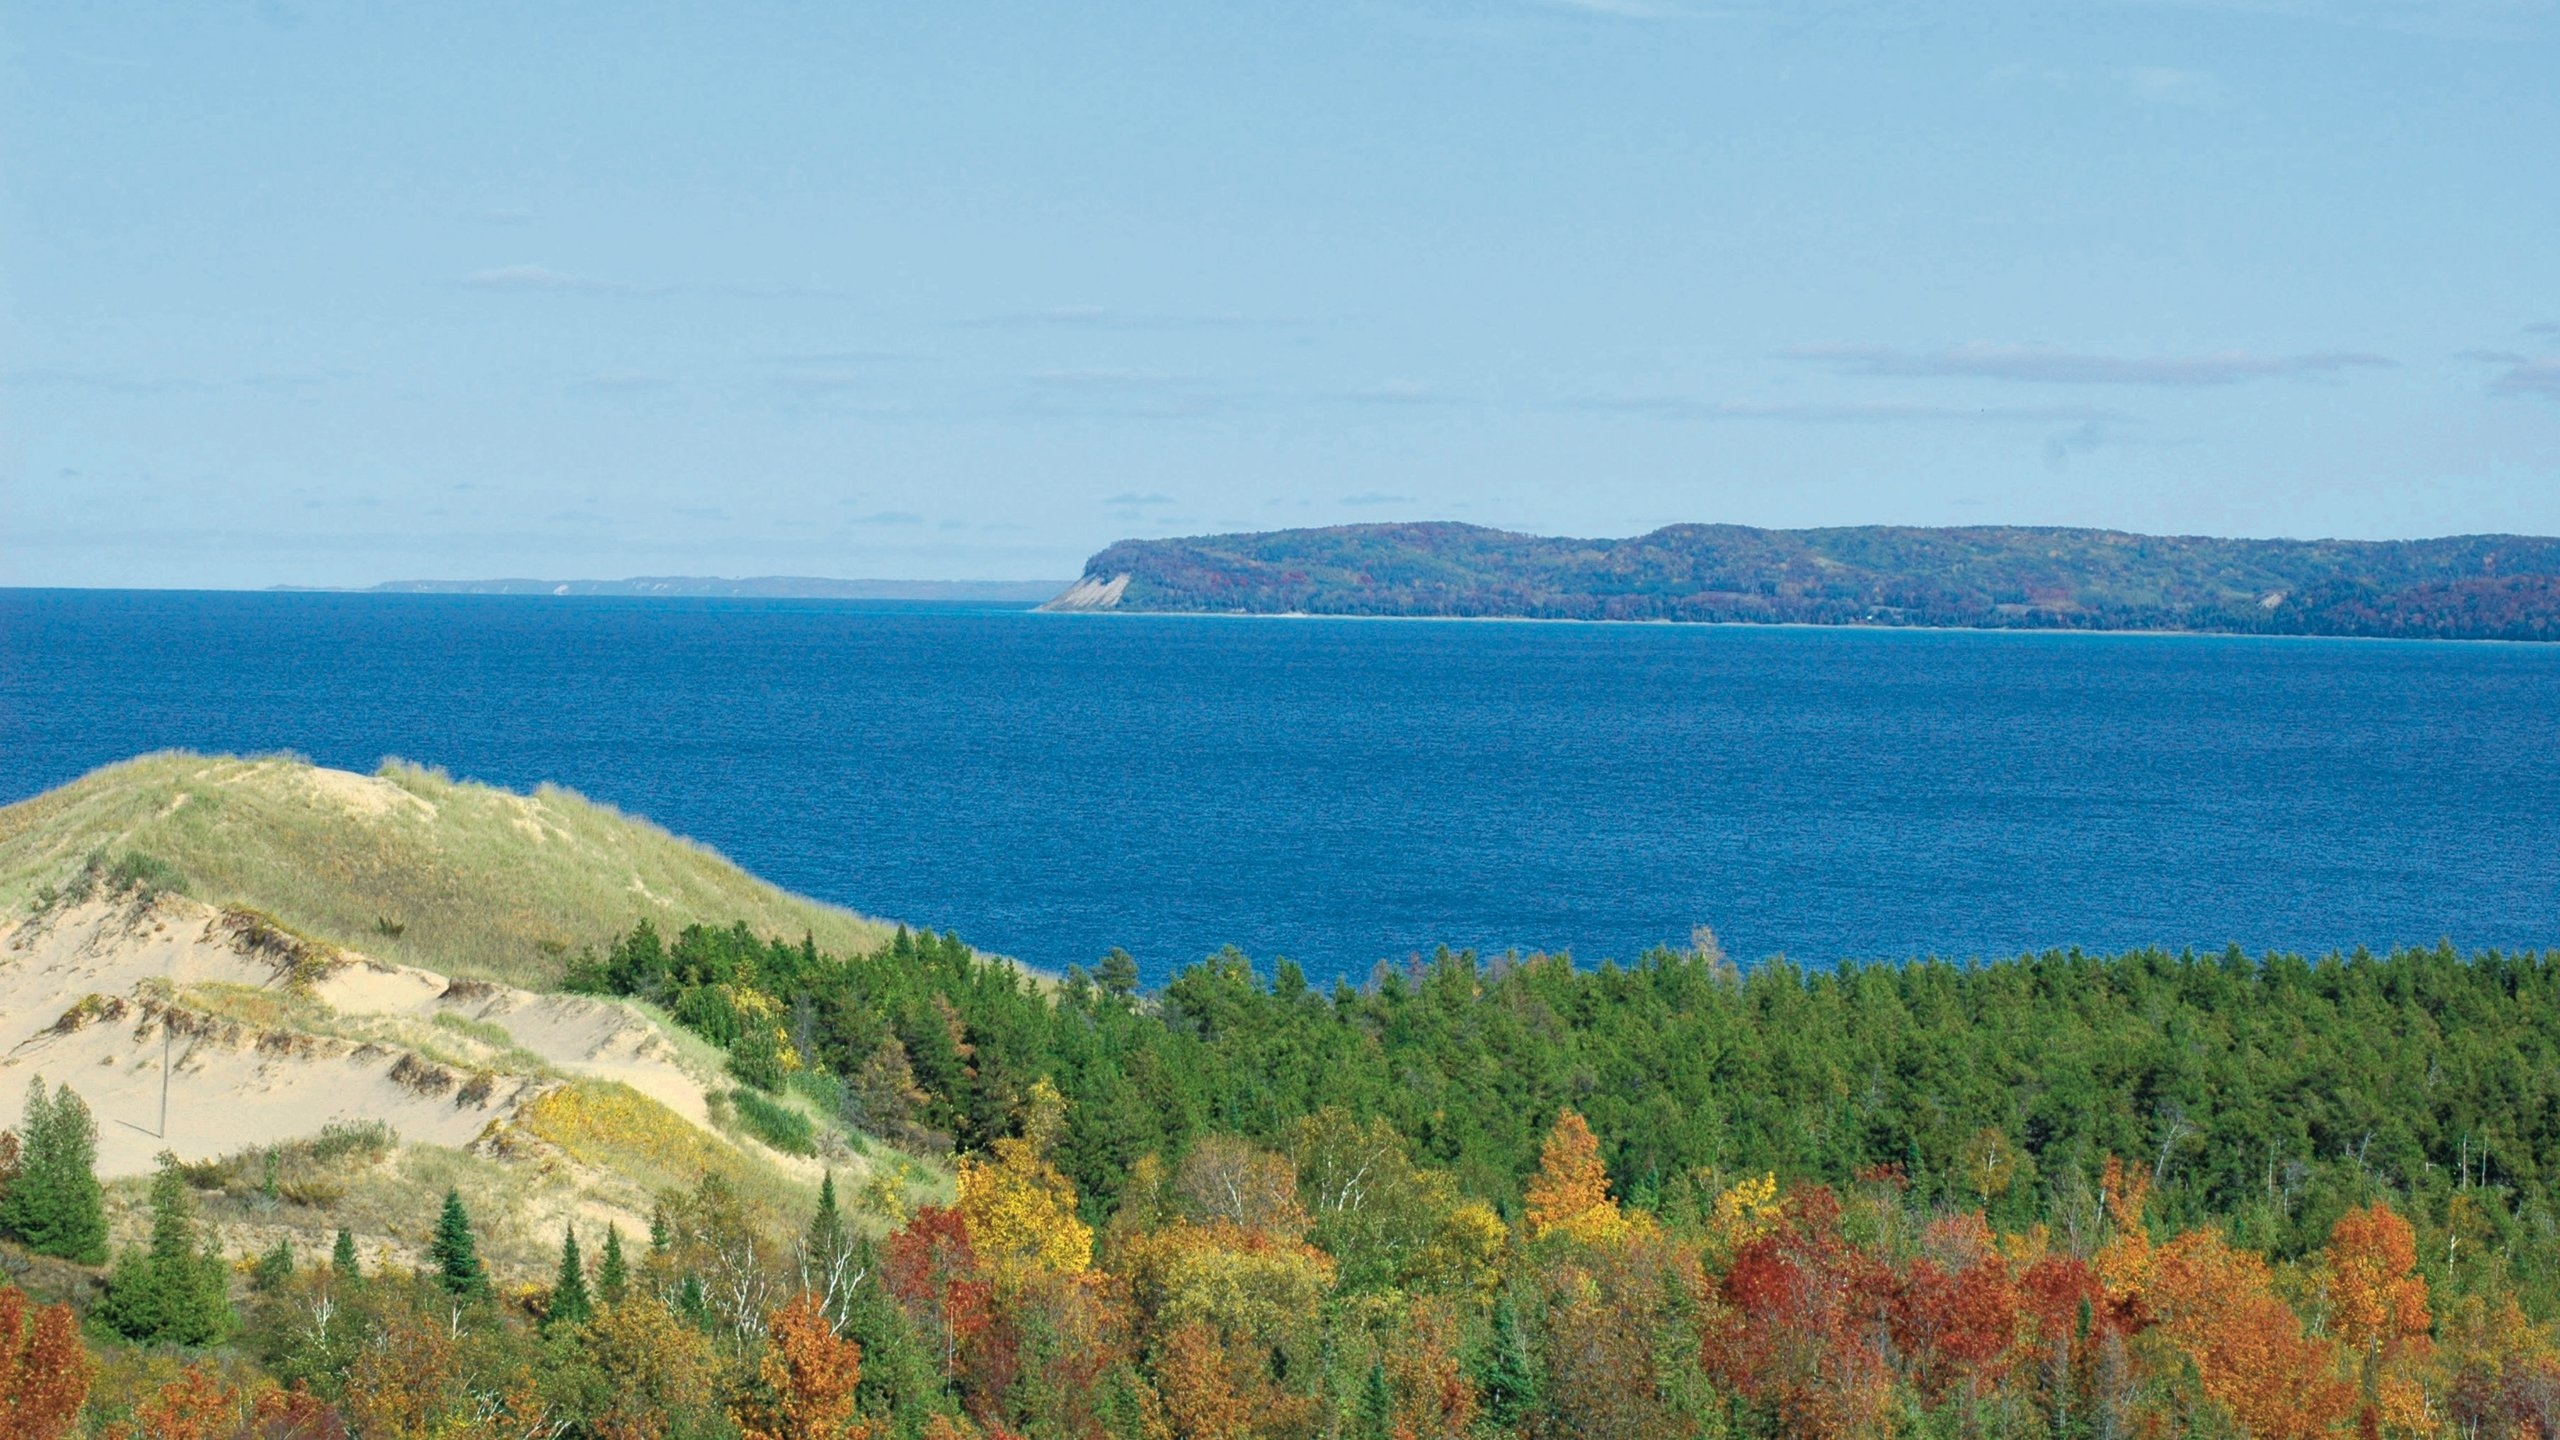 10 Best Hotels Closest to Sleeping Bear Dunes National Lakeshore in